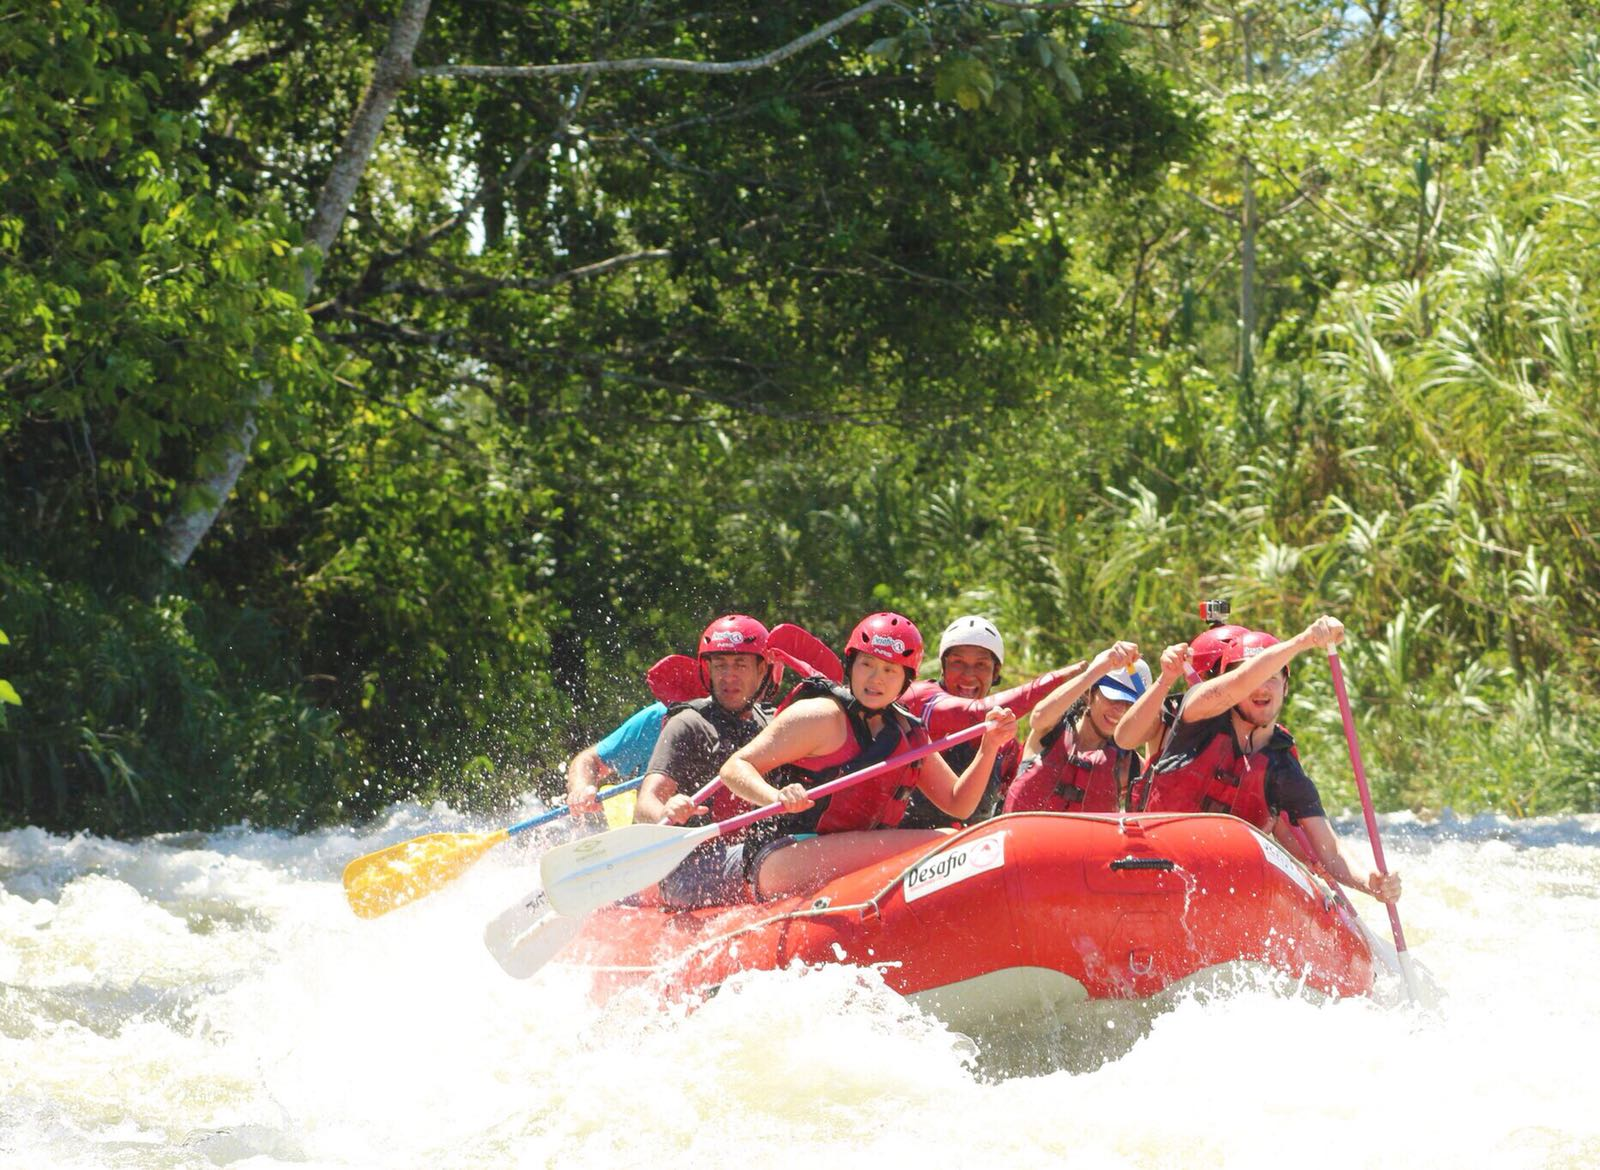 A photo of a group having an epic adventure while whitewater rafting at the Balsa River